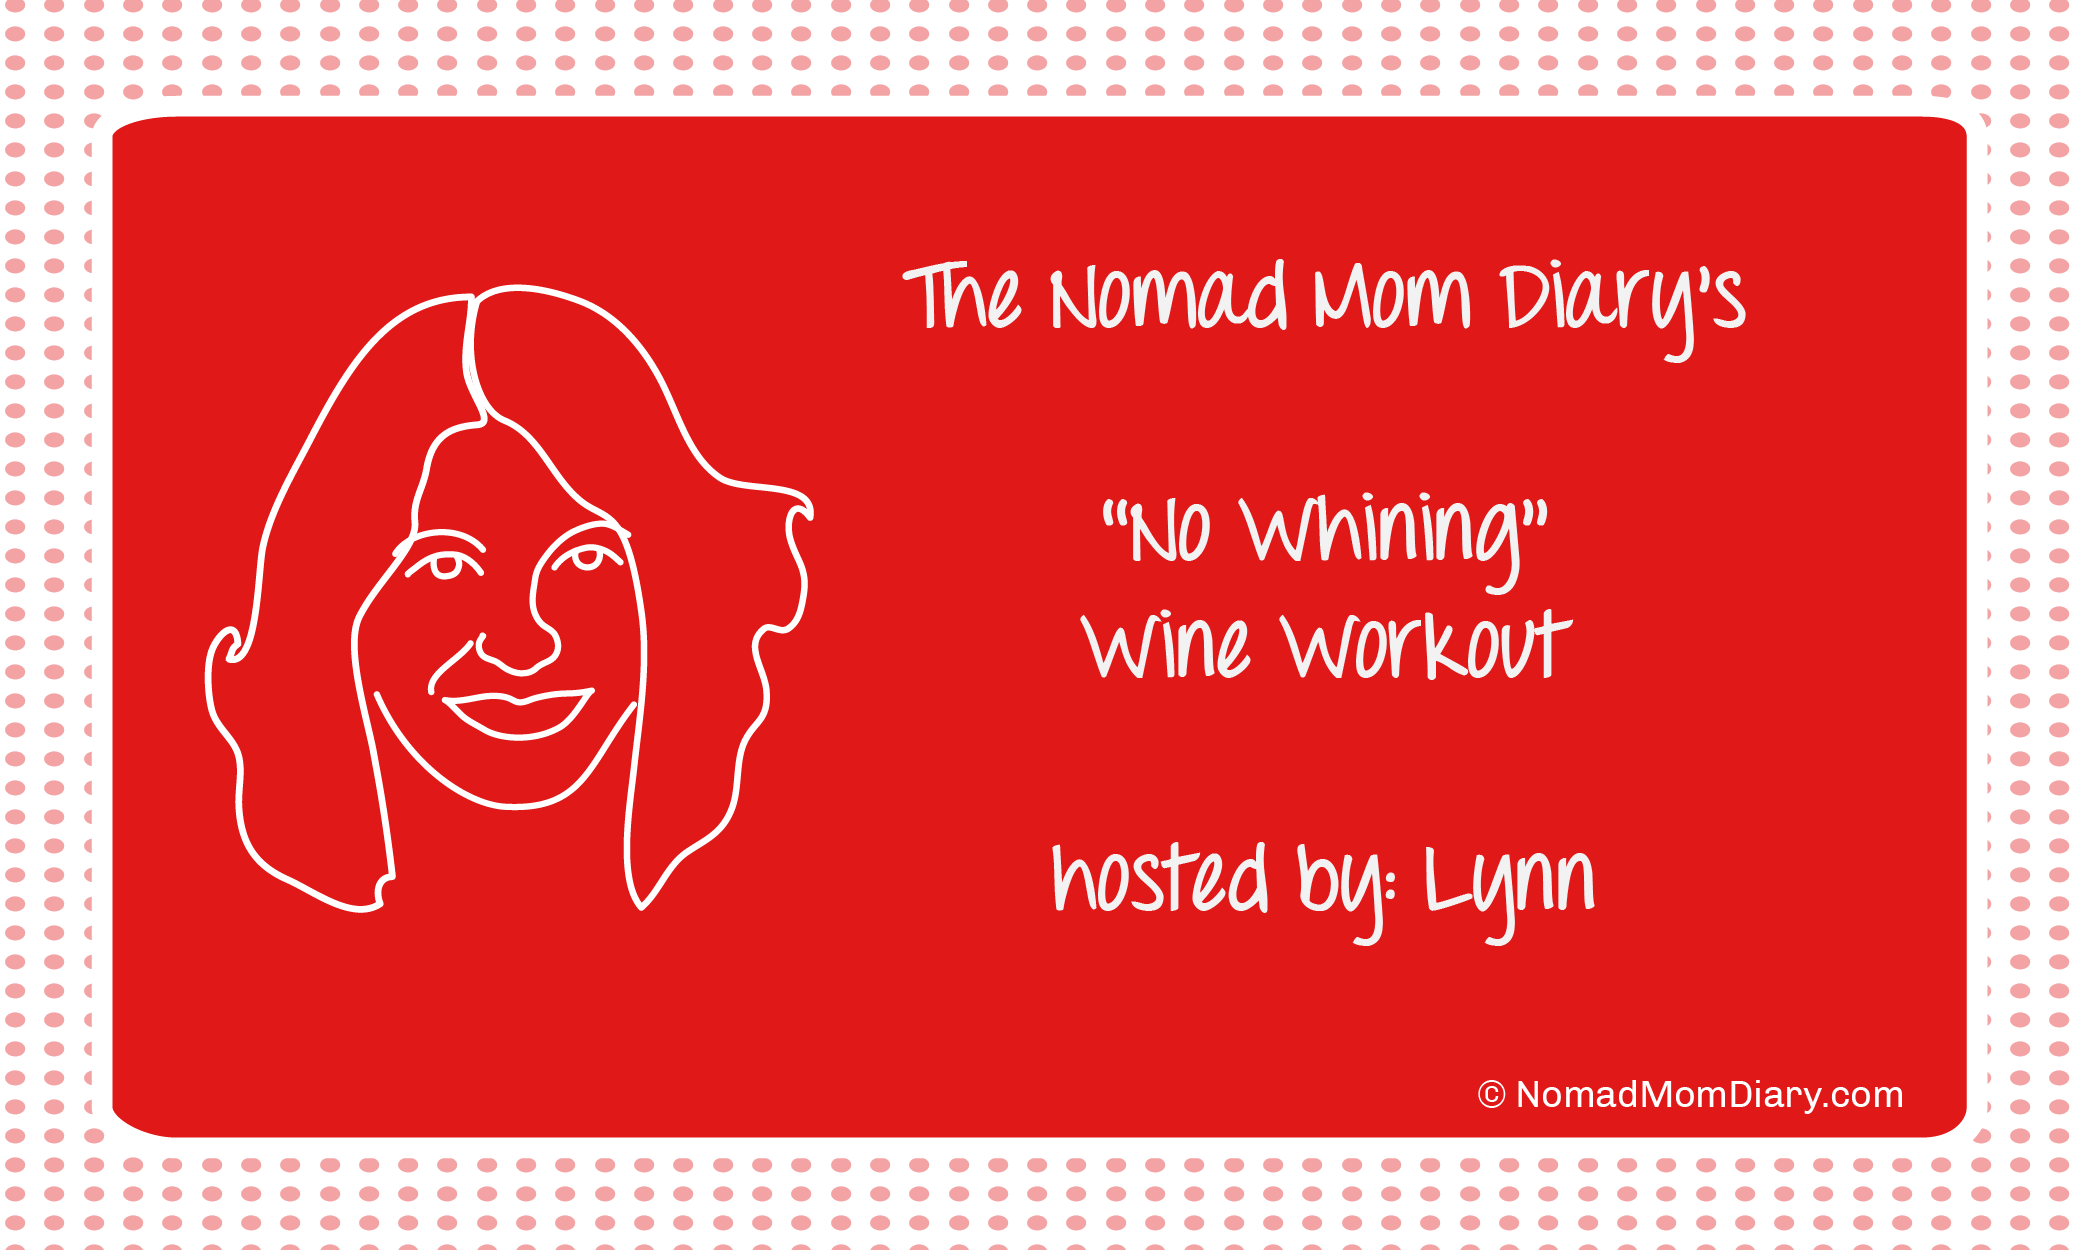 No Whining Wine Workout